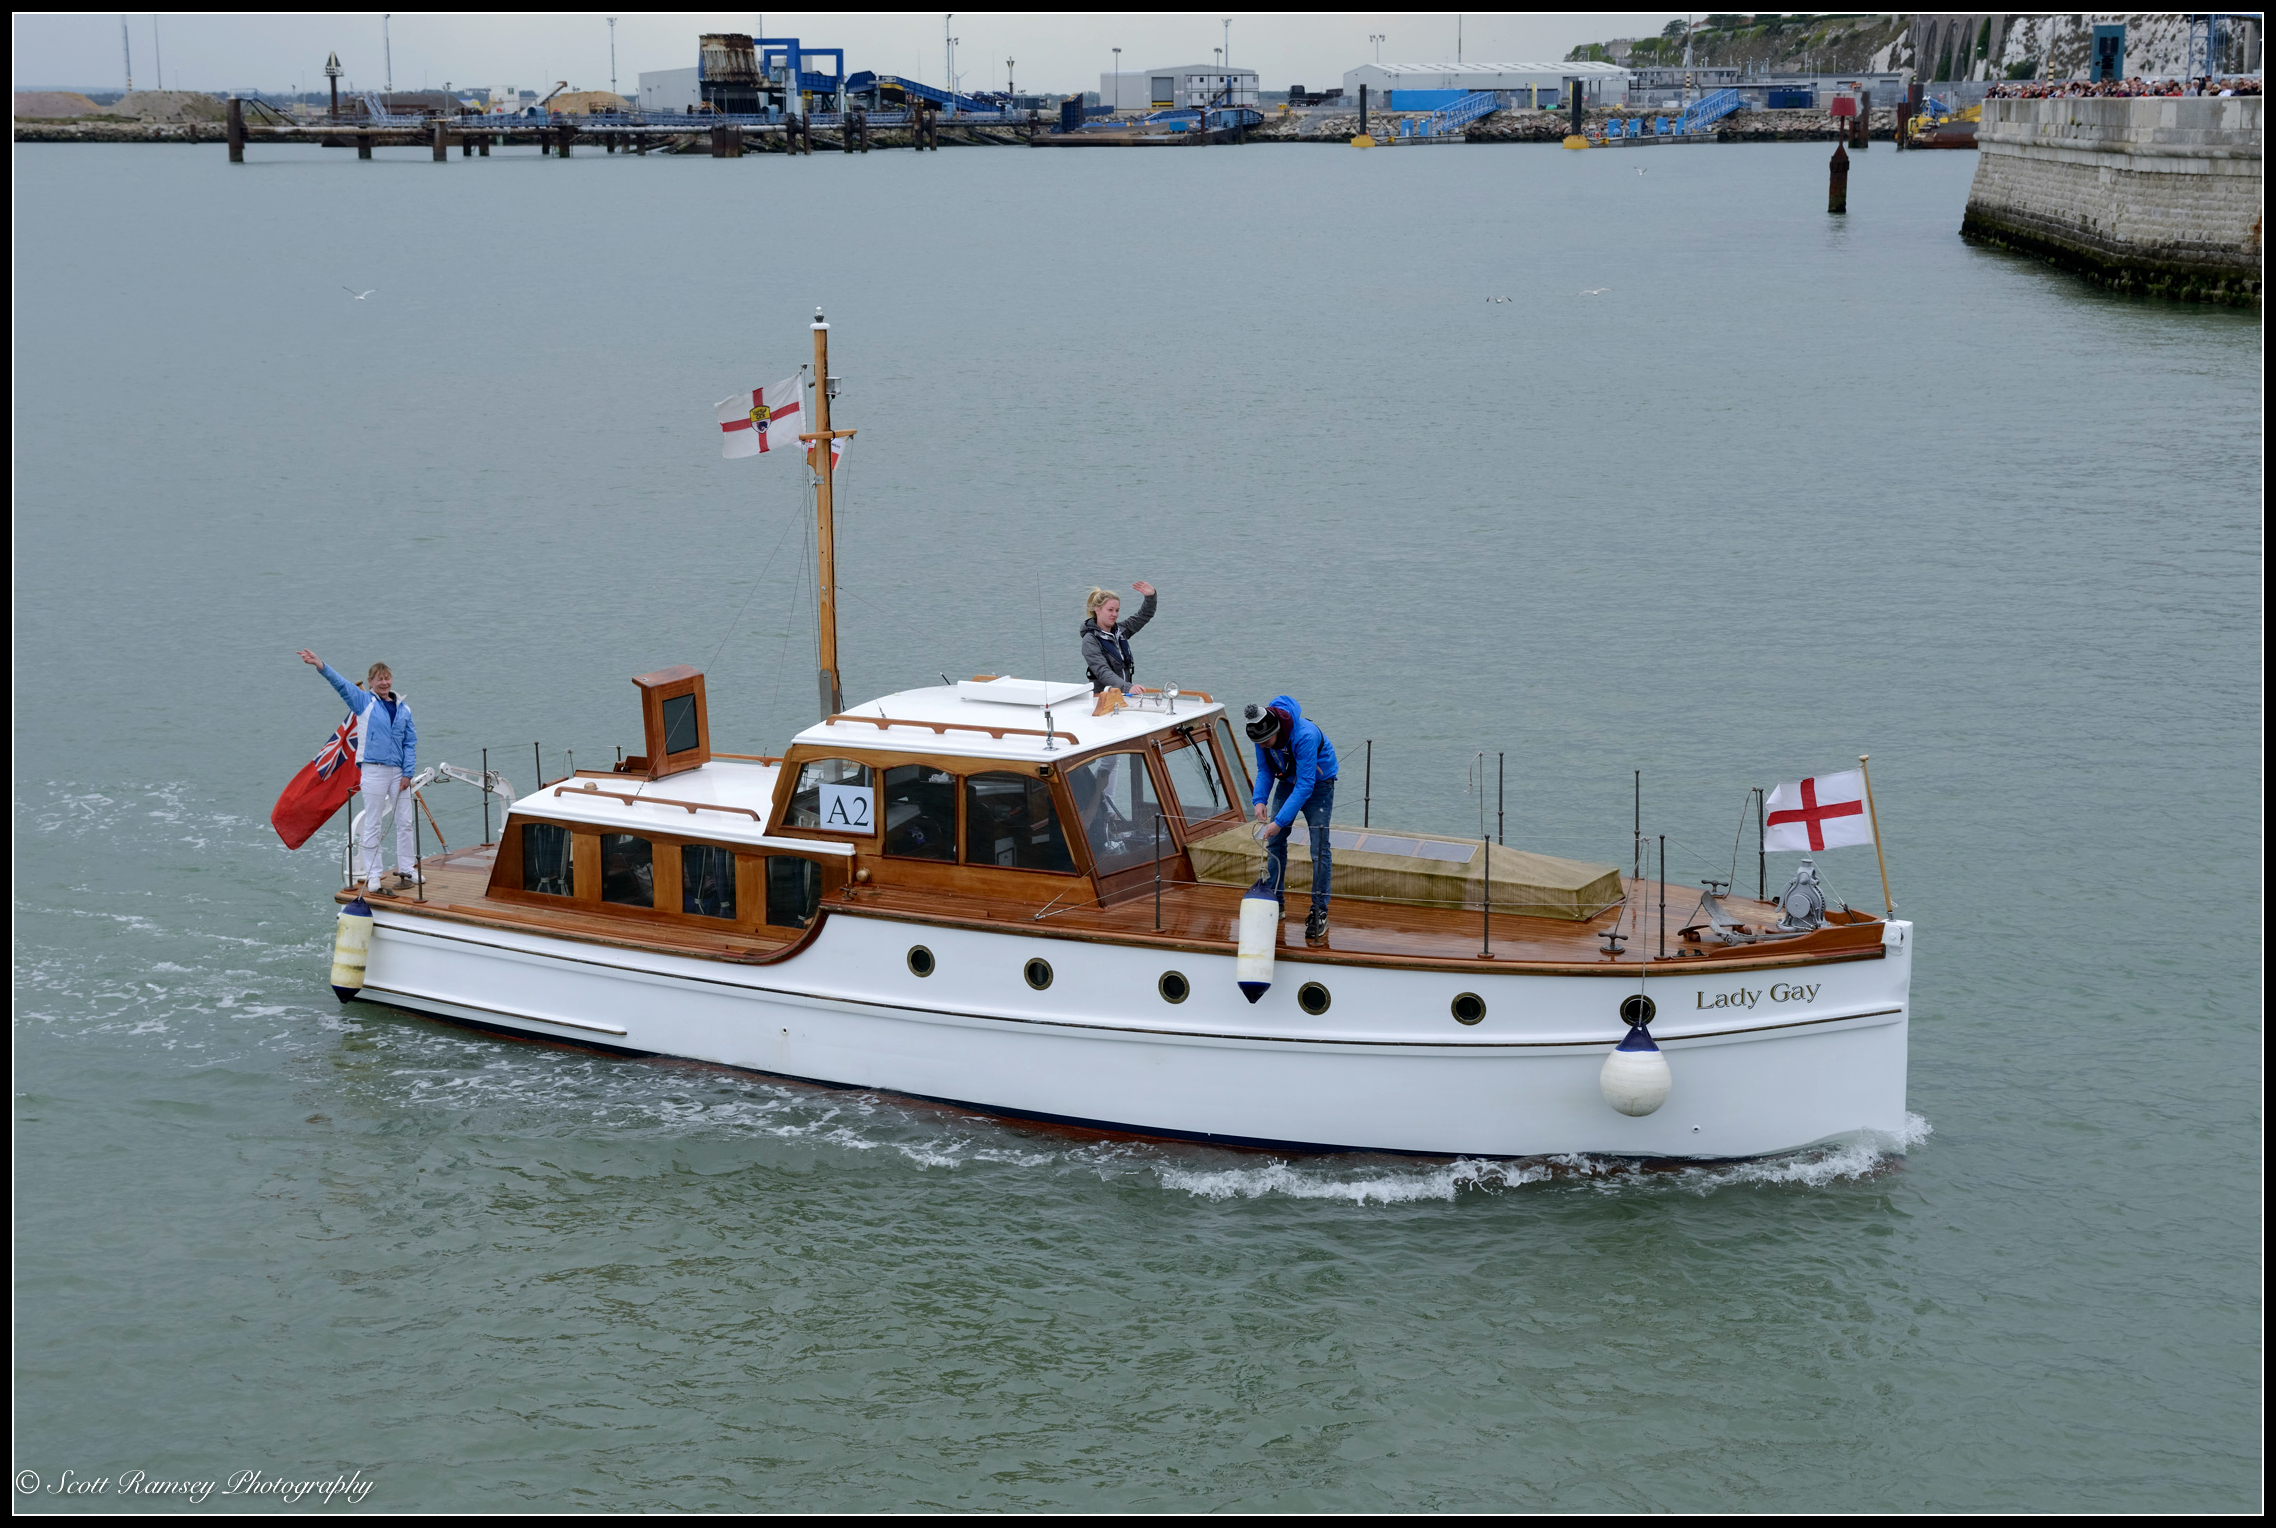 The Lady Gay, a 1934 motor yacht andone of the original Dunkirk Little Ships, returns to the Royal Harbour Marina Ramsgate during a weekend of events to commemorate the 75th anniversary of Operation Dynamo.©Scott Ramsey Photography